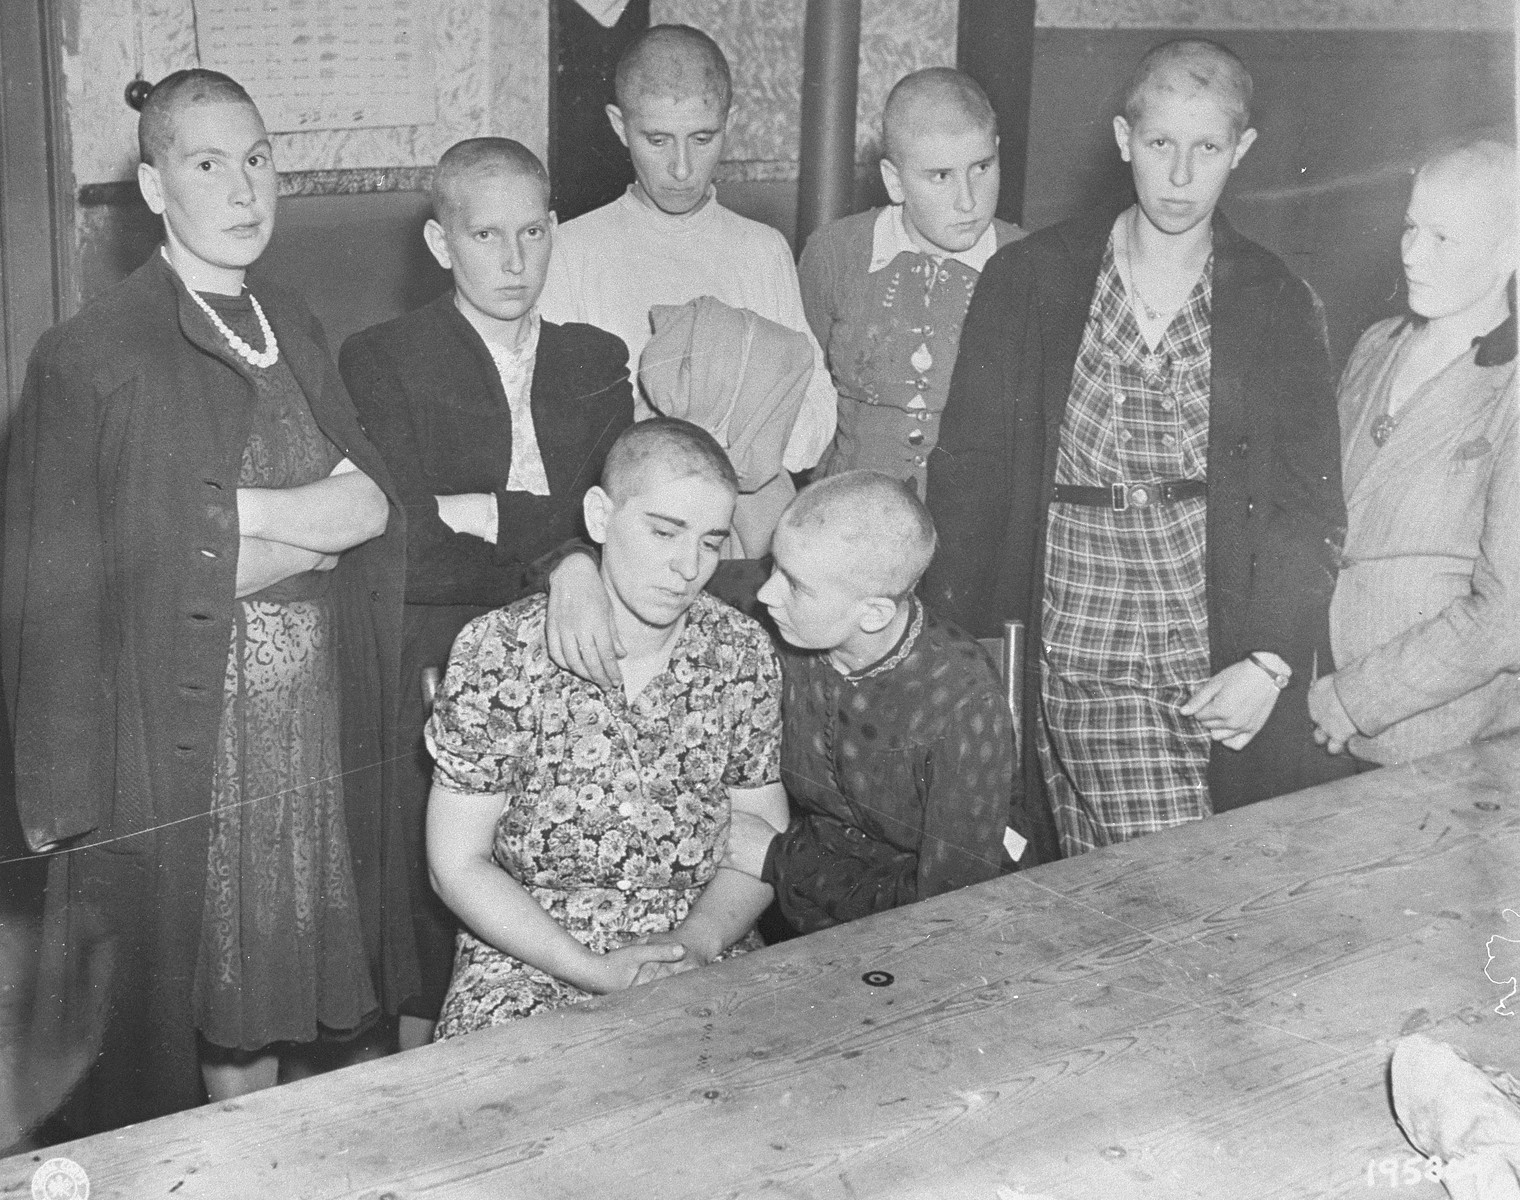 Women accused of collaborating with the Germans wait to be marched through the streets of Grave by the Dutch resistance.  The womens' heads were shaved in preparation for their public humiliation.